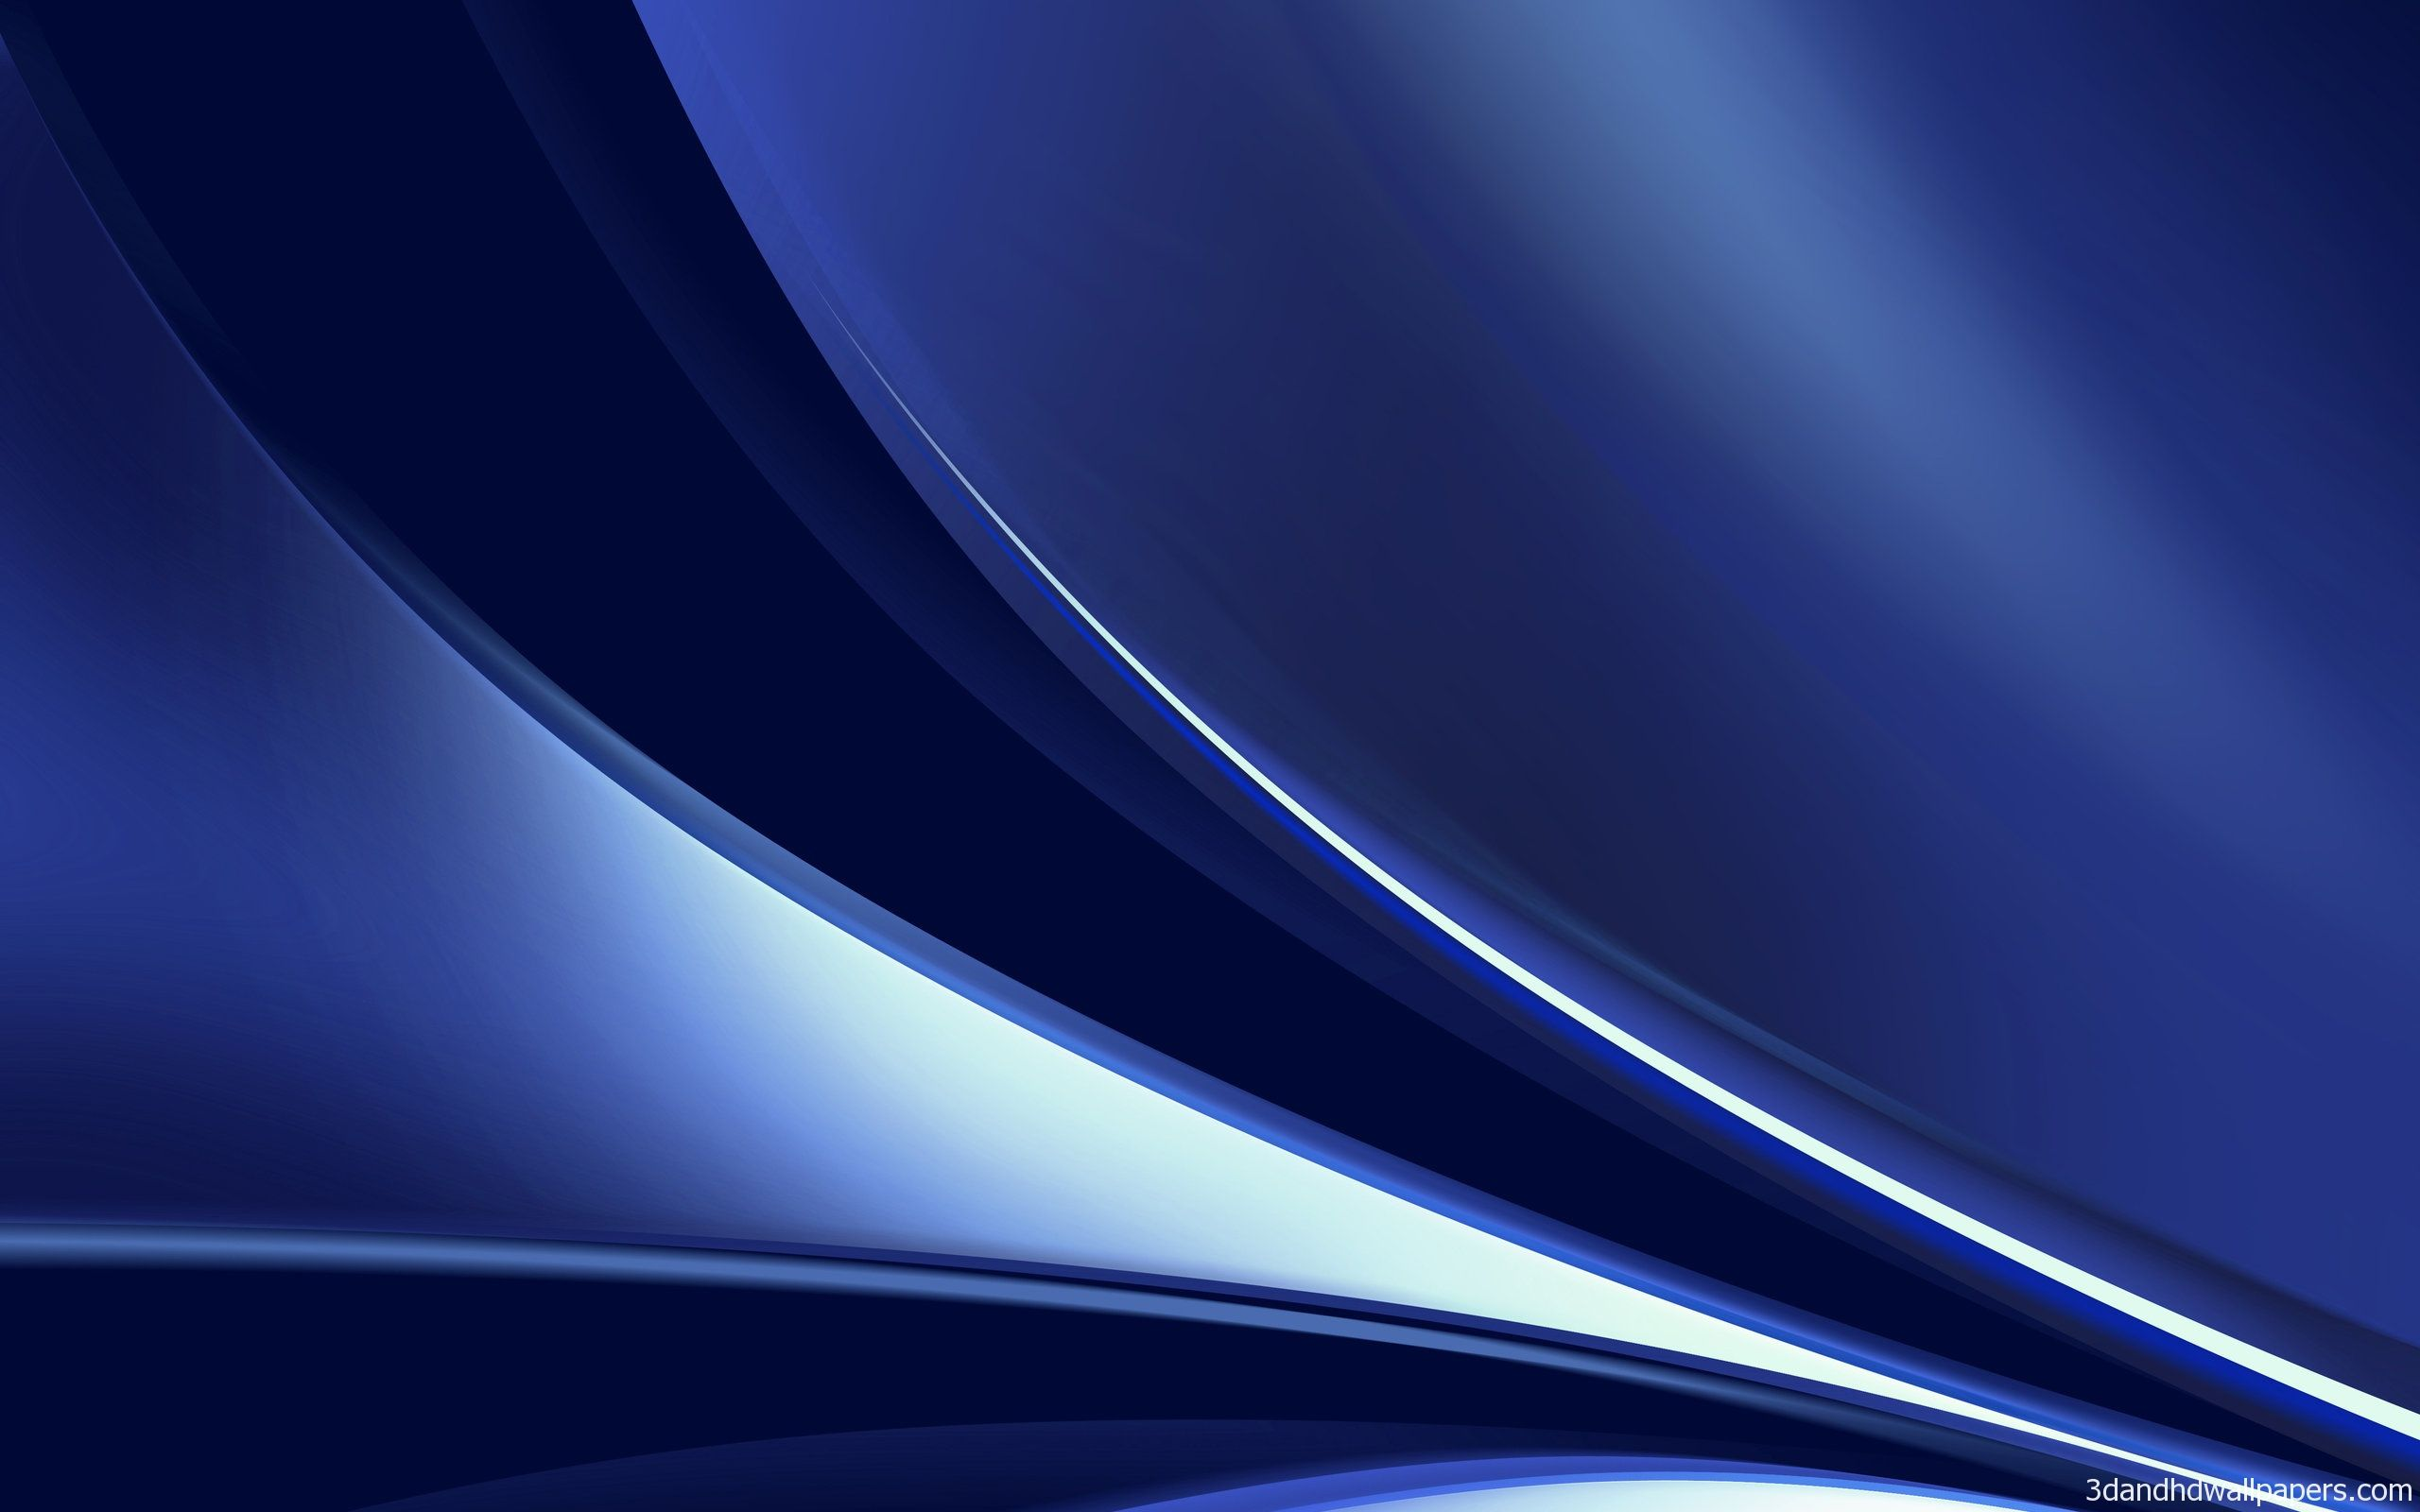 Dark Blue And Black Backgrounds Posted By Ethan Peltier